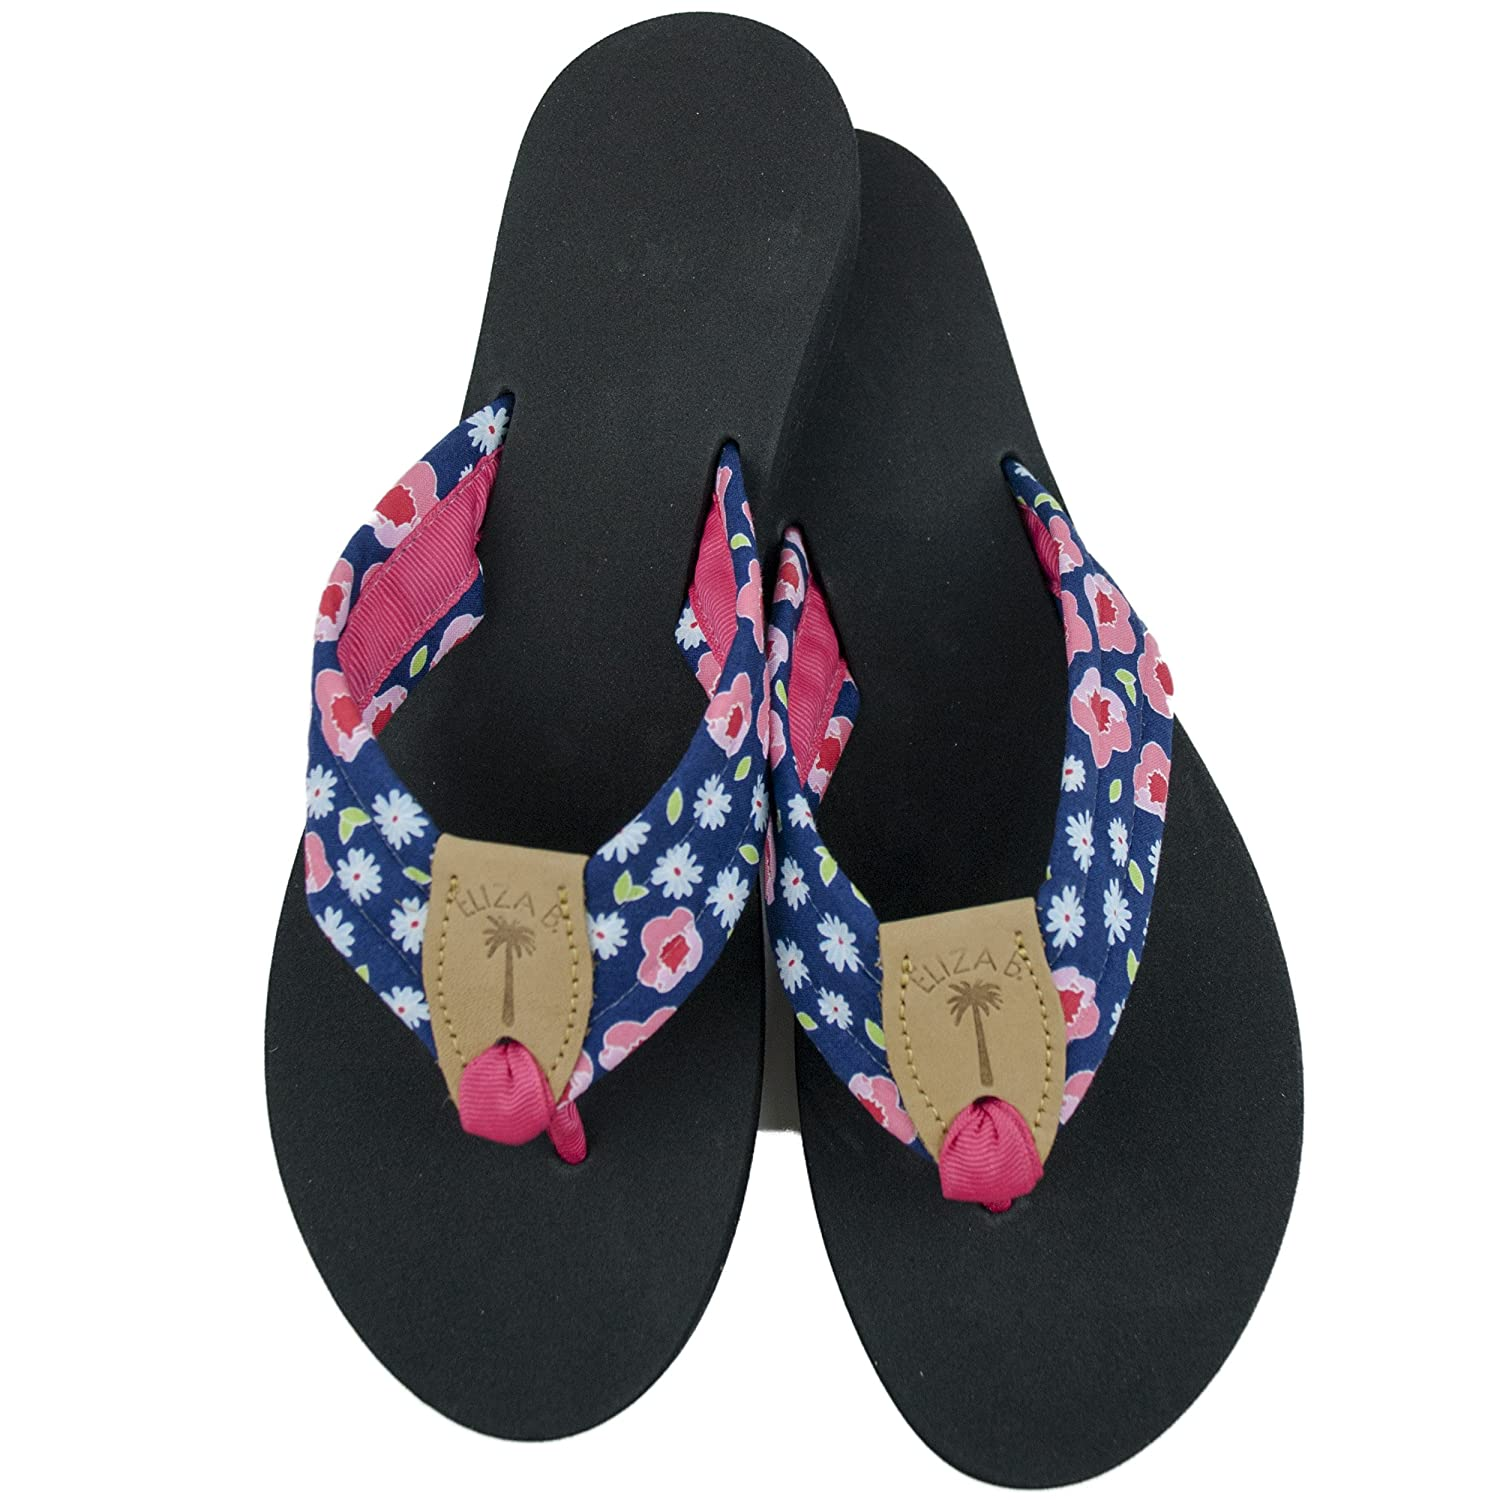 266479a2d3cb Eliza pink peonies fabric sandal with black sole clothing jpg 1500x1500  Macrame eliza flip flops